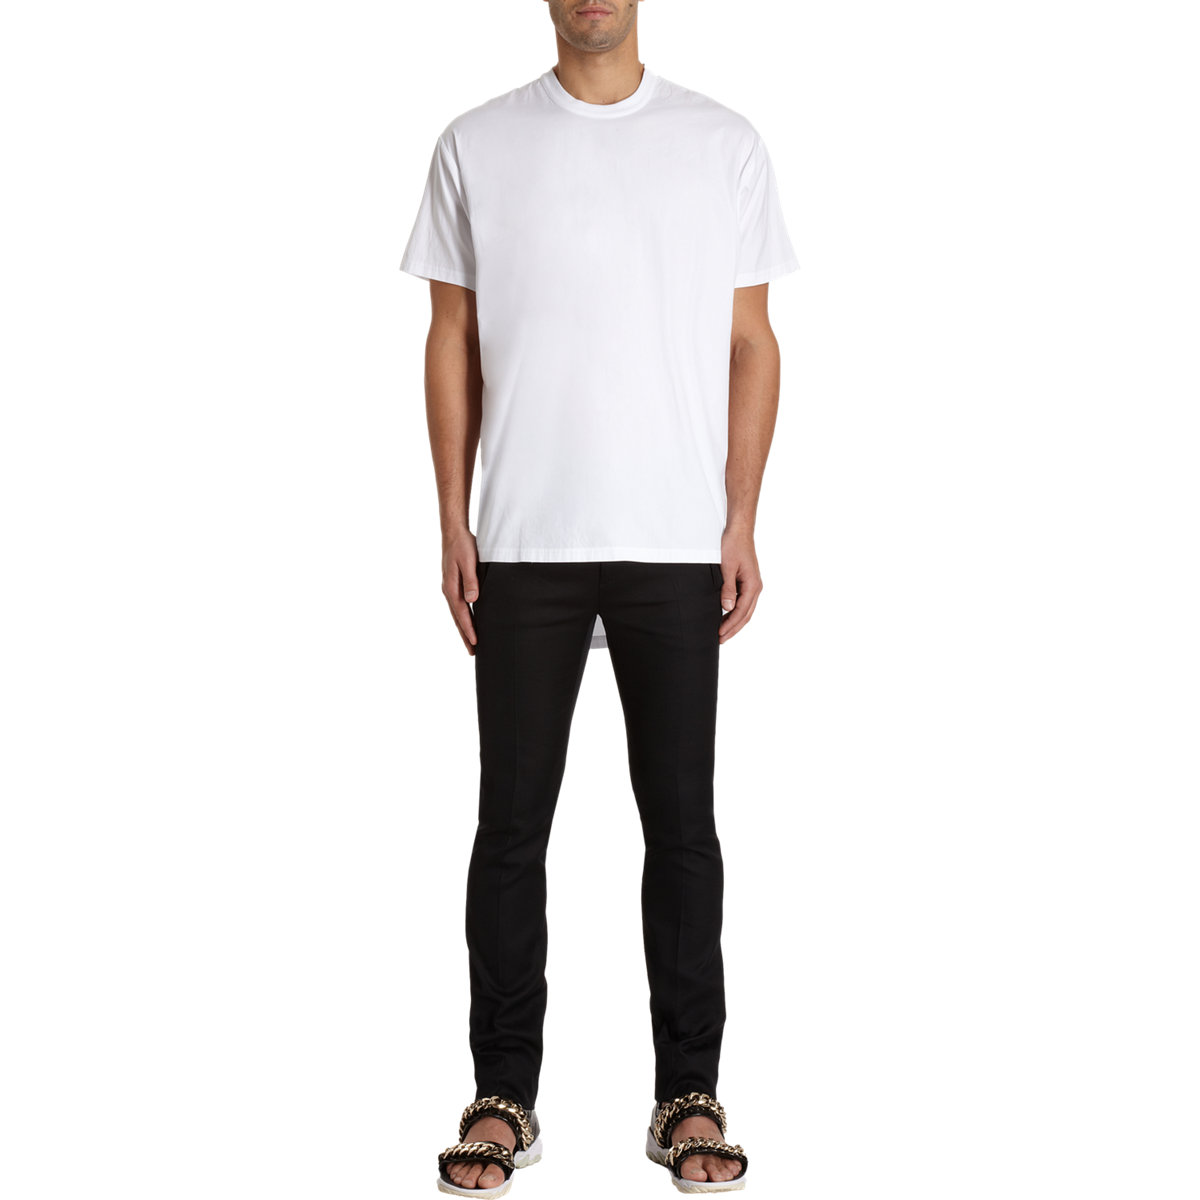 Givenchy Long Back Short Sleeve T Shirt In White For Men